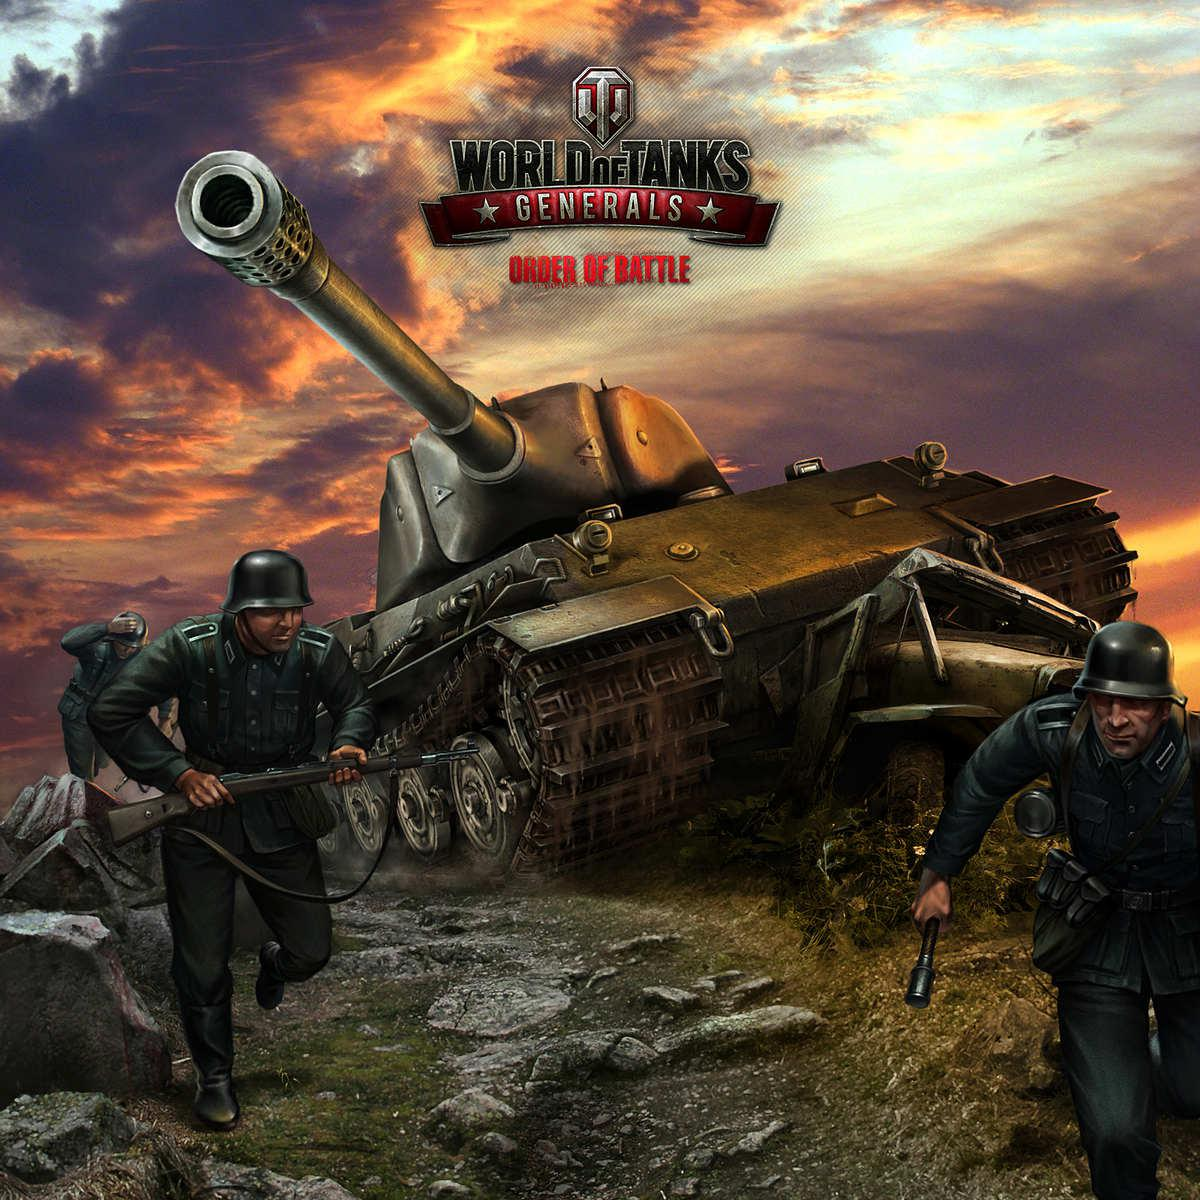 Códigos para la beta cerrada de World of Tanks Generals